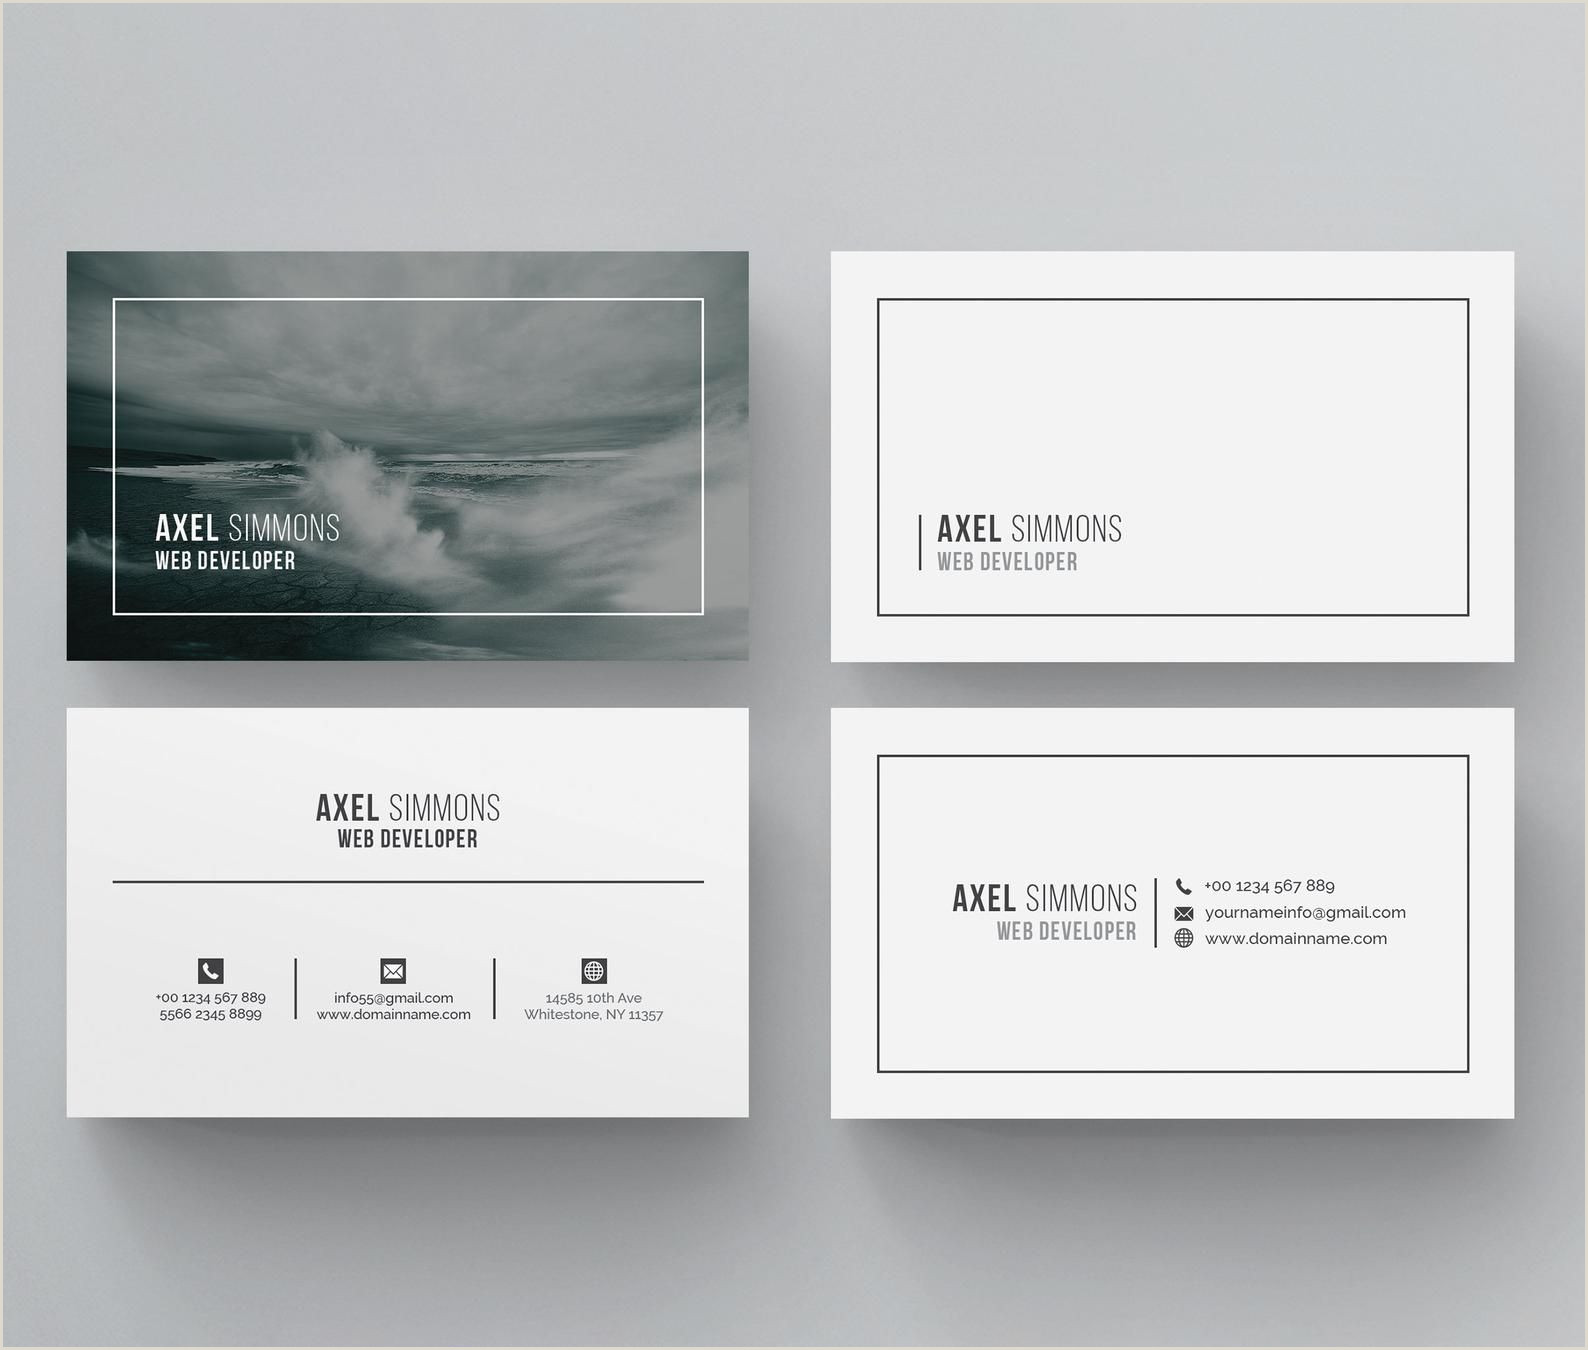 How To Design Business Cards On Word Business Card Word Business Card Template Business Card